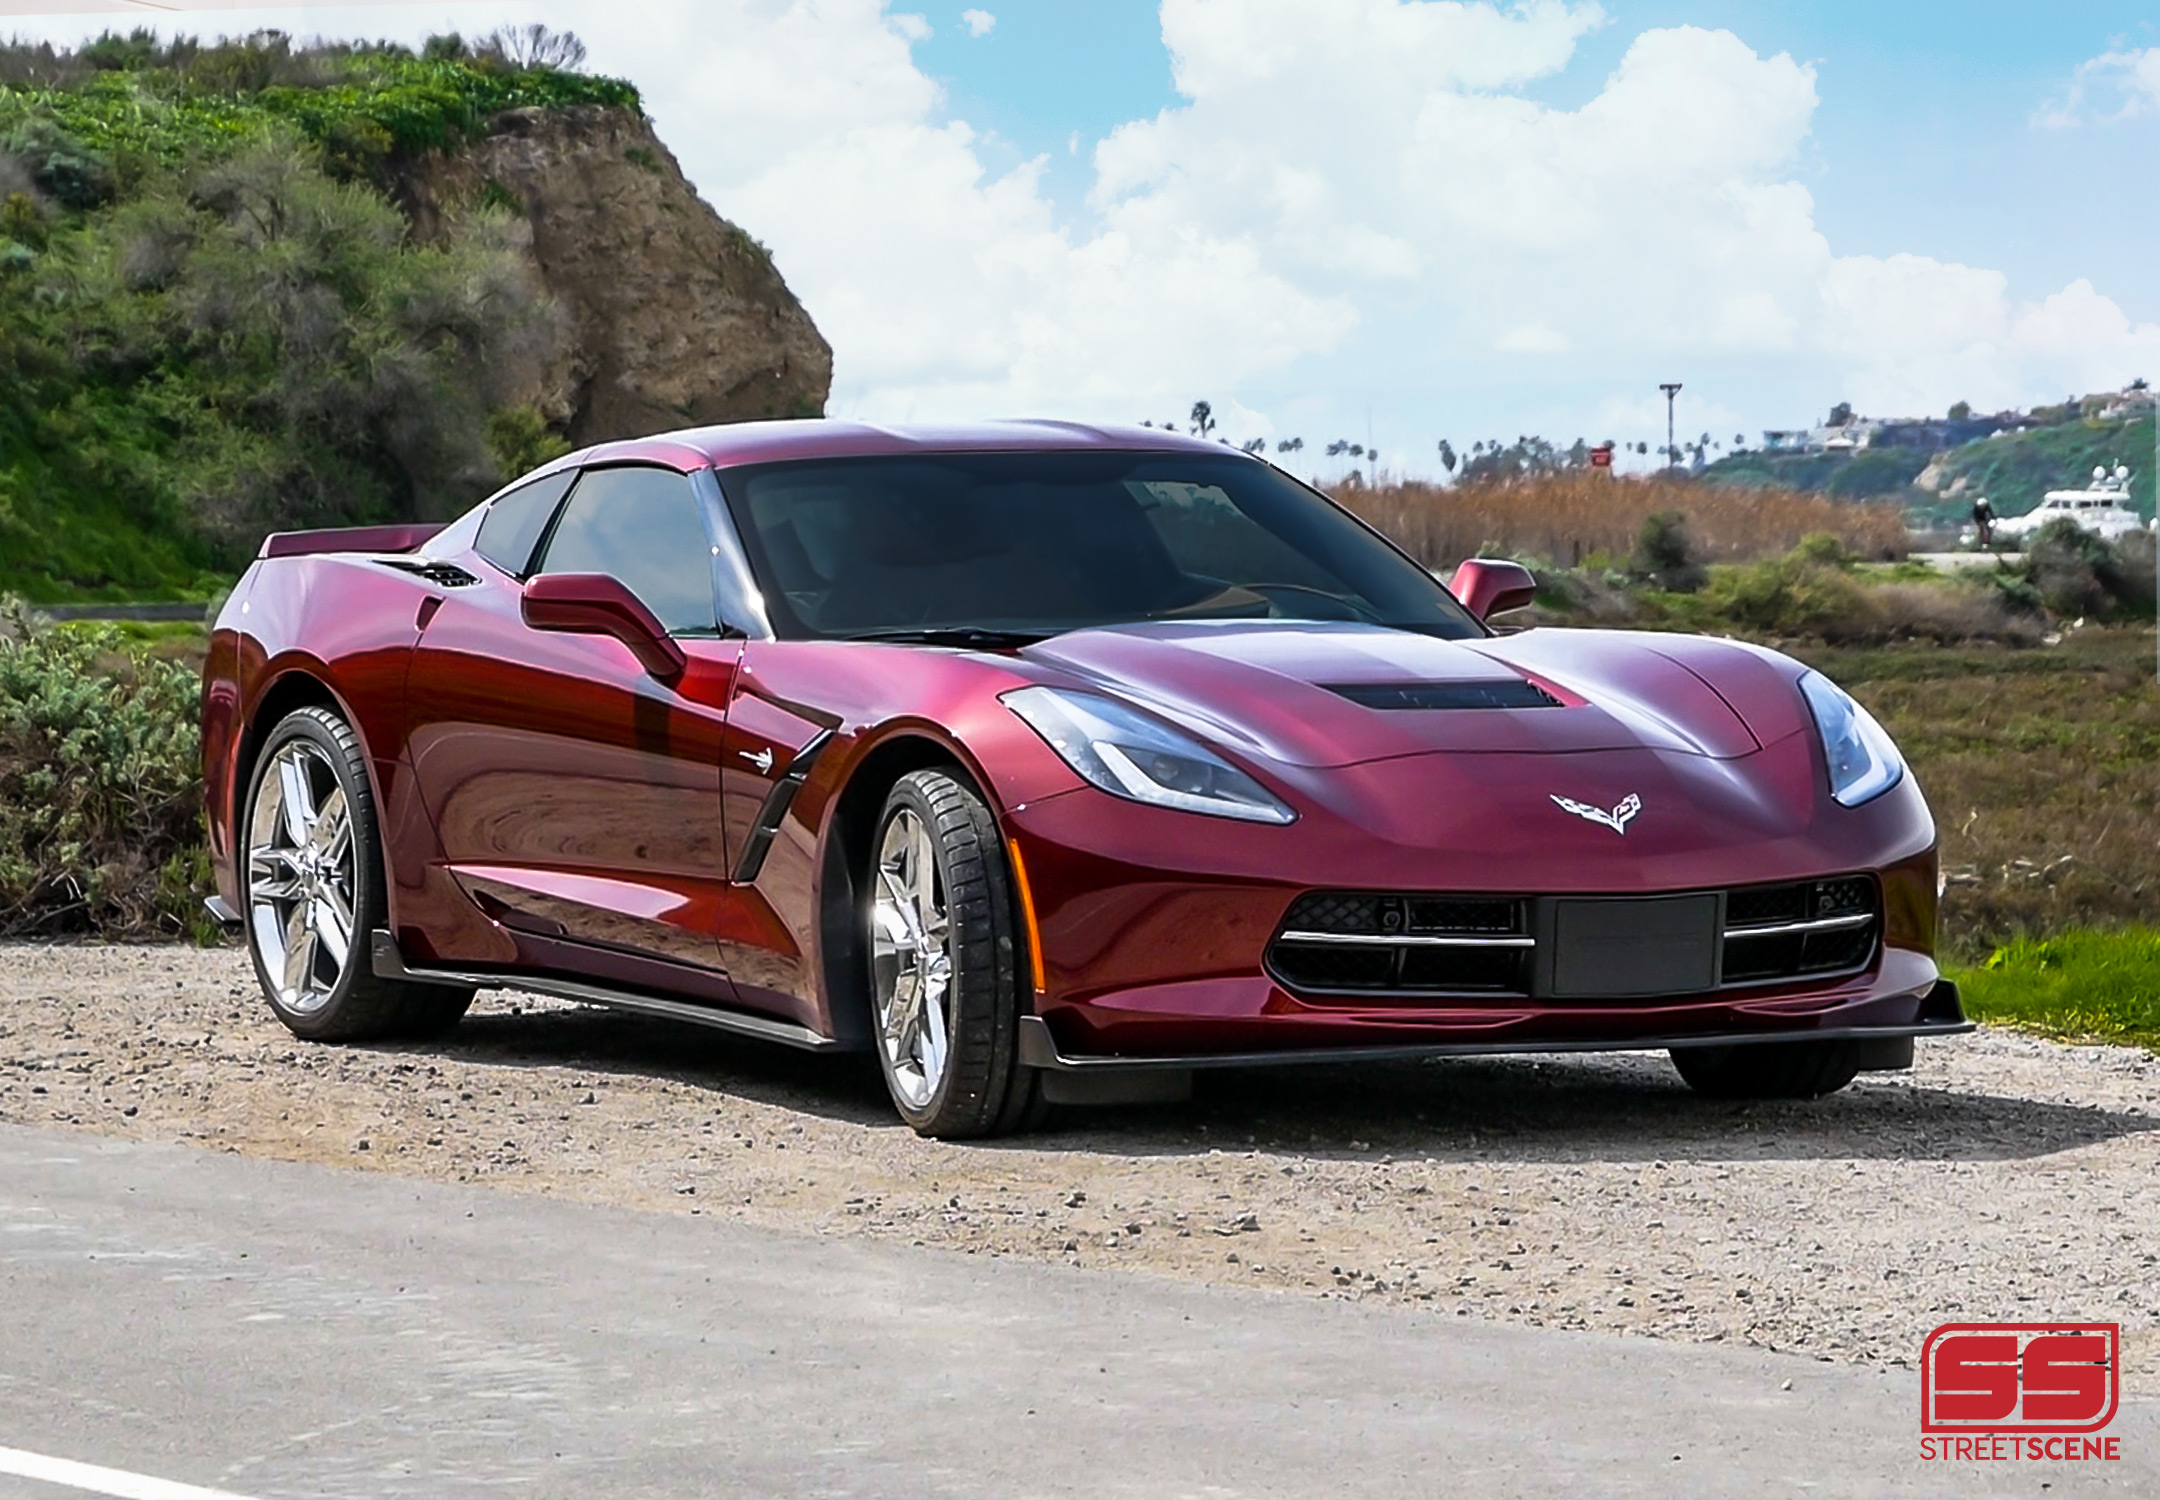 2014-2019 Corvette C7 Stingray, Grand Sport, Z06 & ZR1 Body Styling By Street Scene Equipment